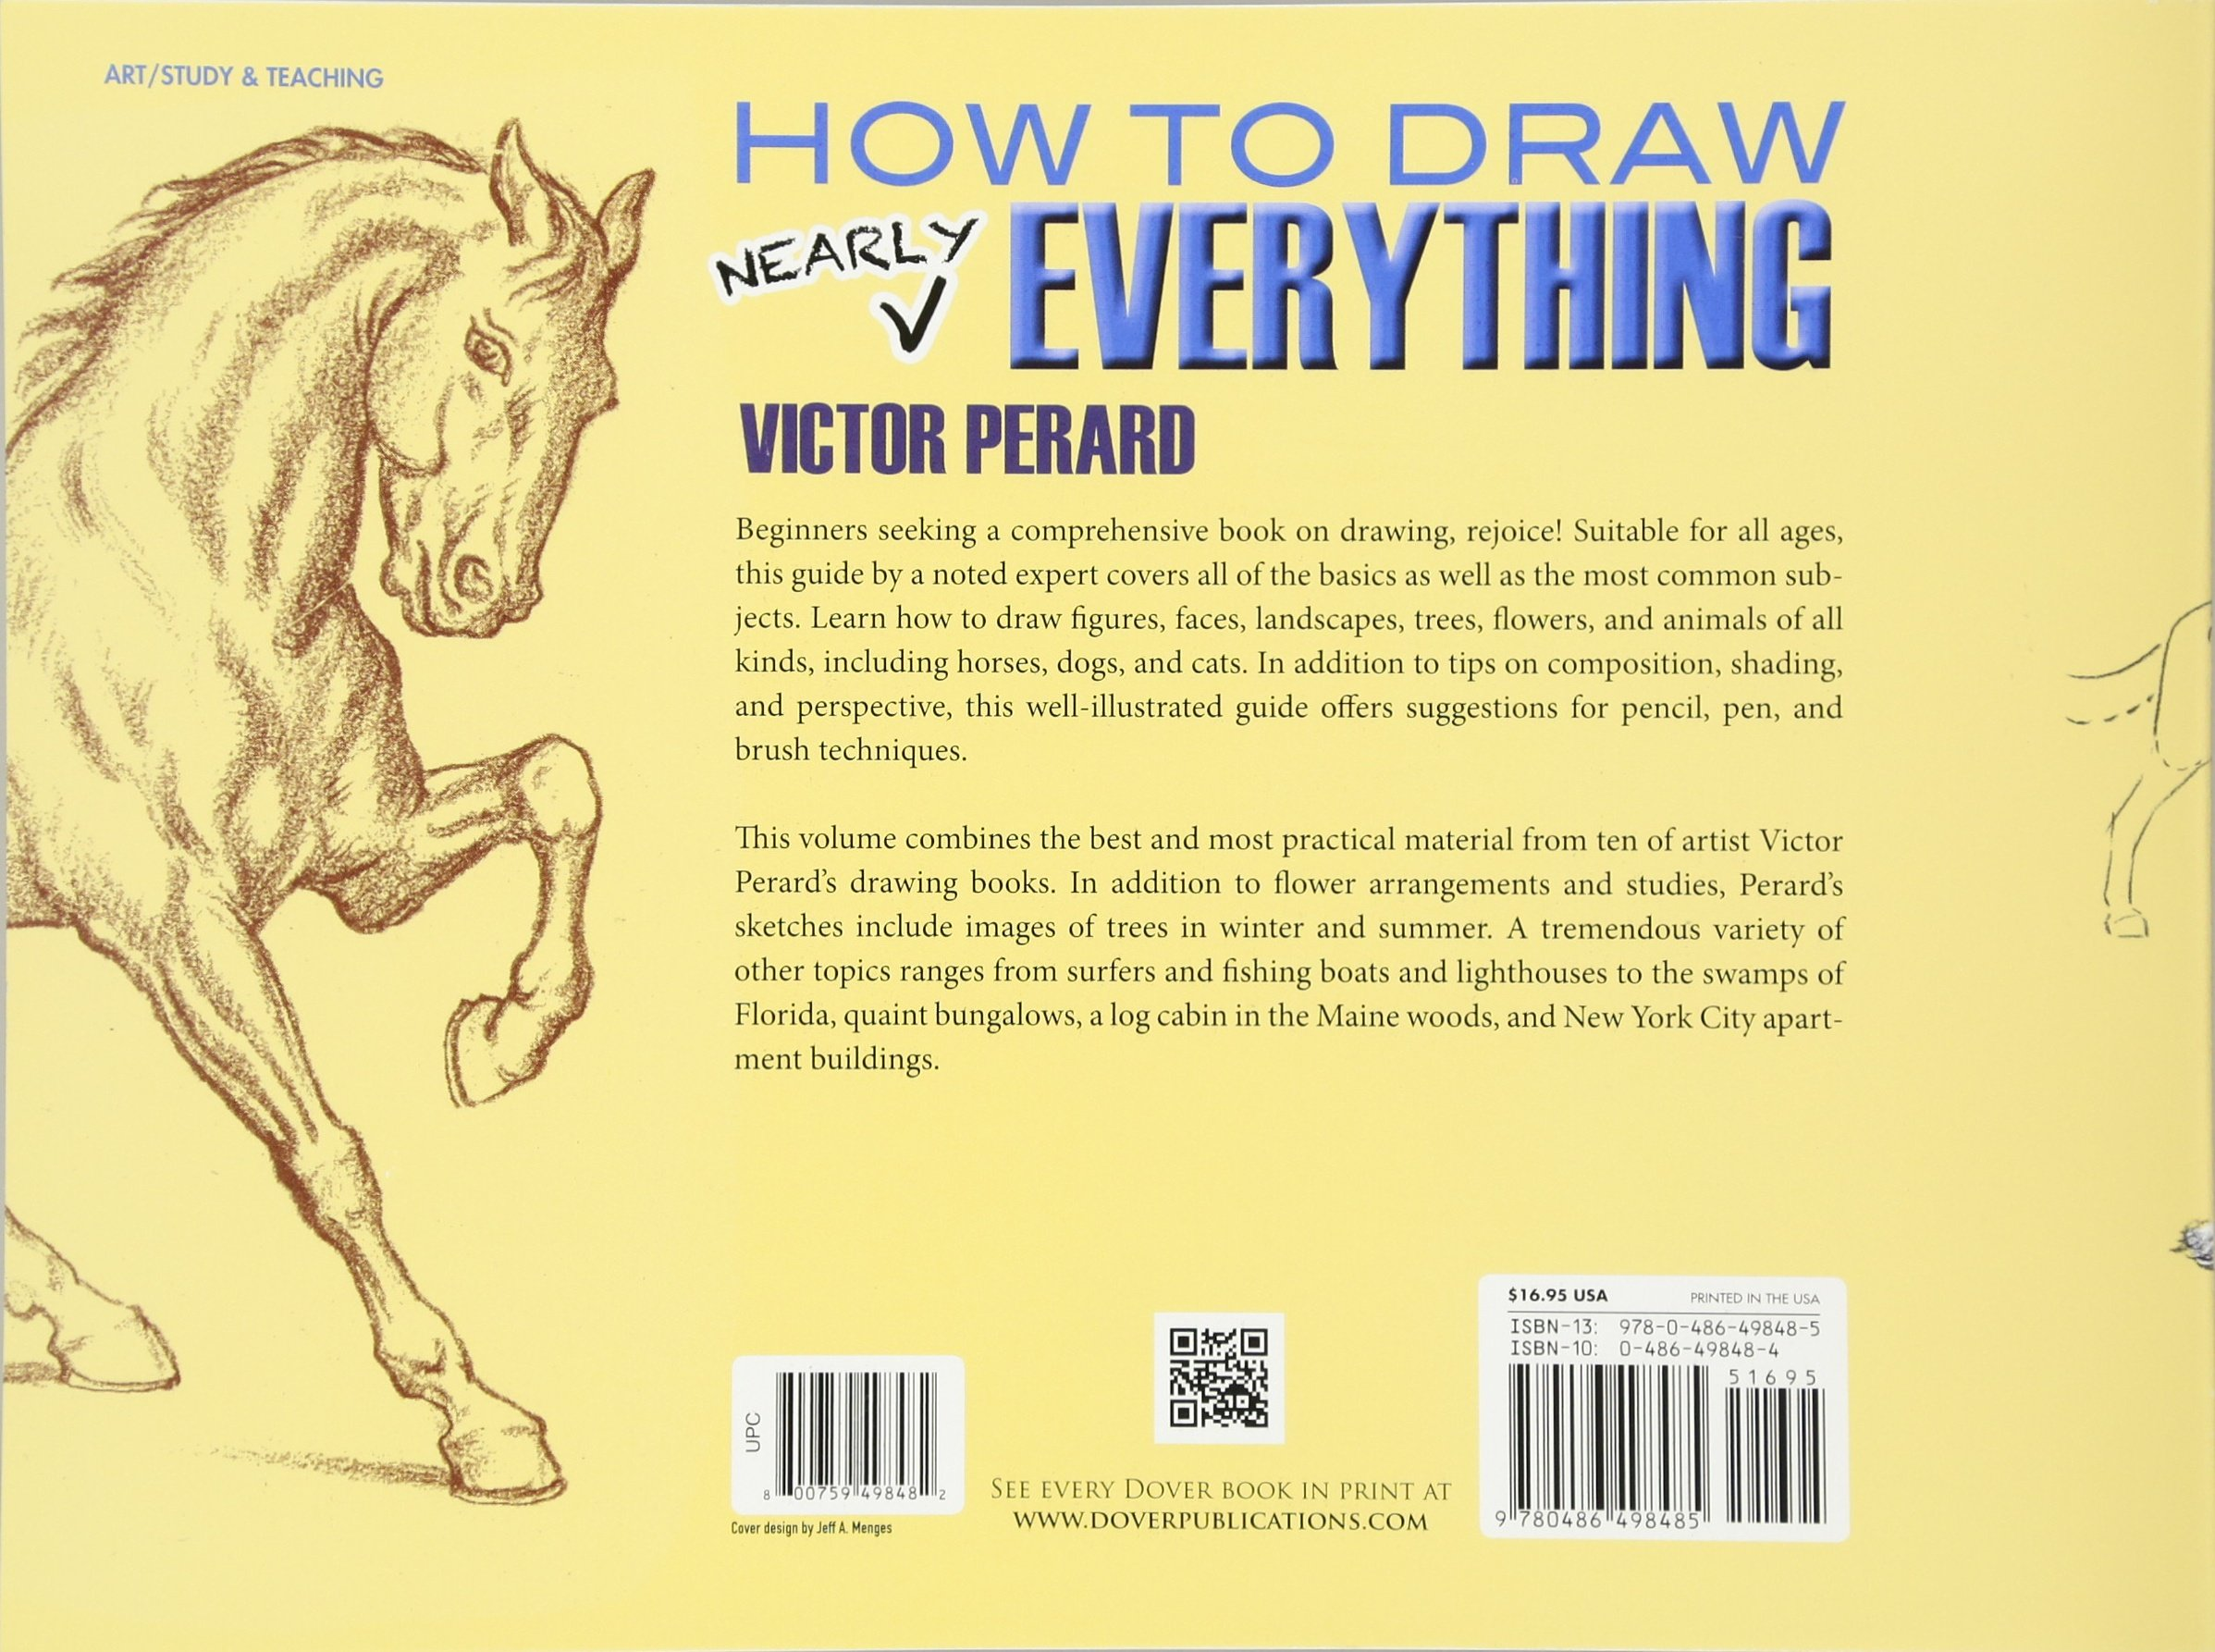 How to Draw Nearly Everything (Dover Art Instruction): Victor Perard ...